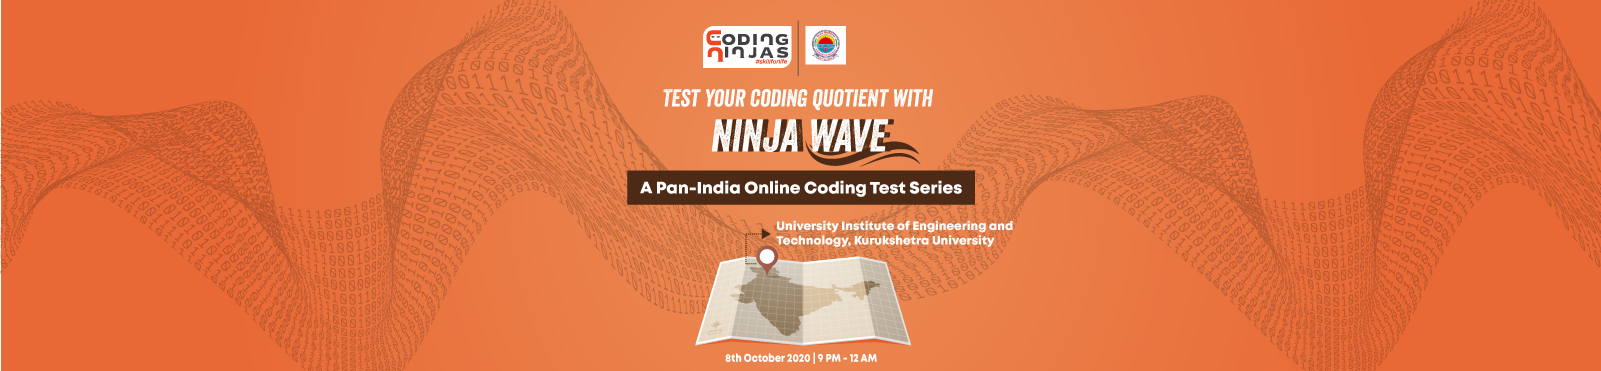 Ninja Wave at University Institute of Engineering and Technology, Kurukshetra